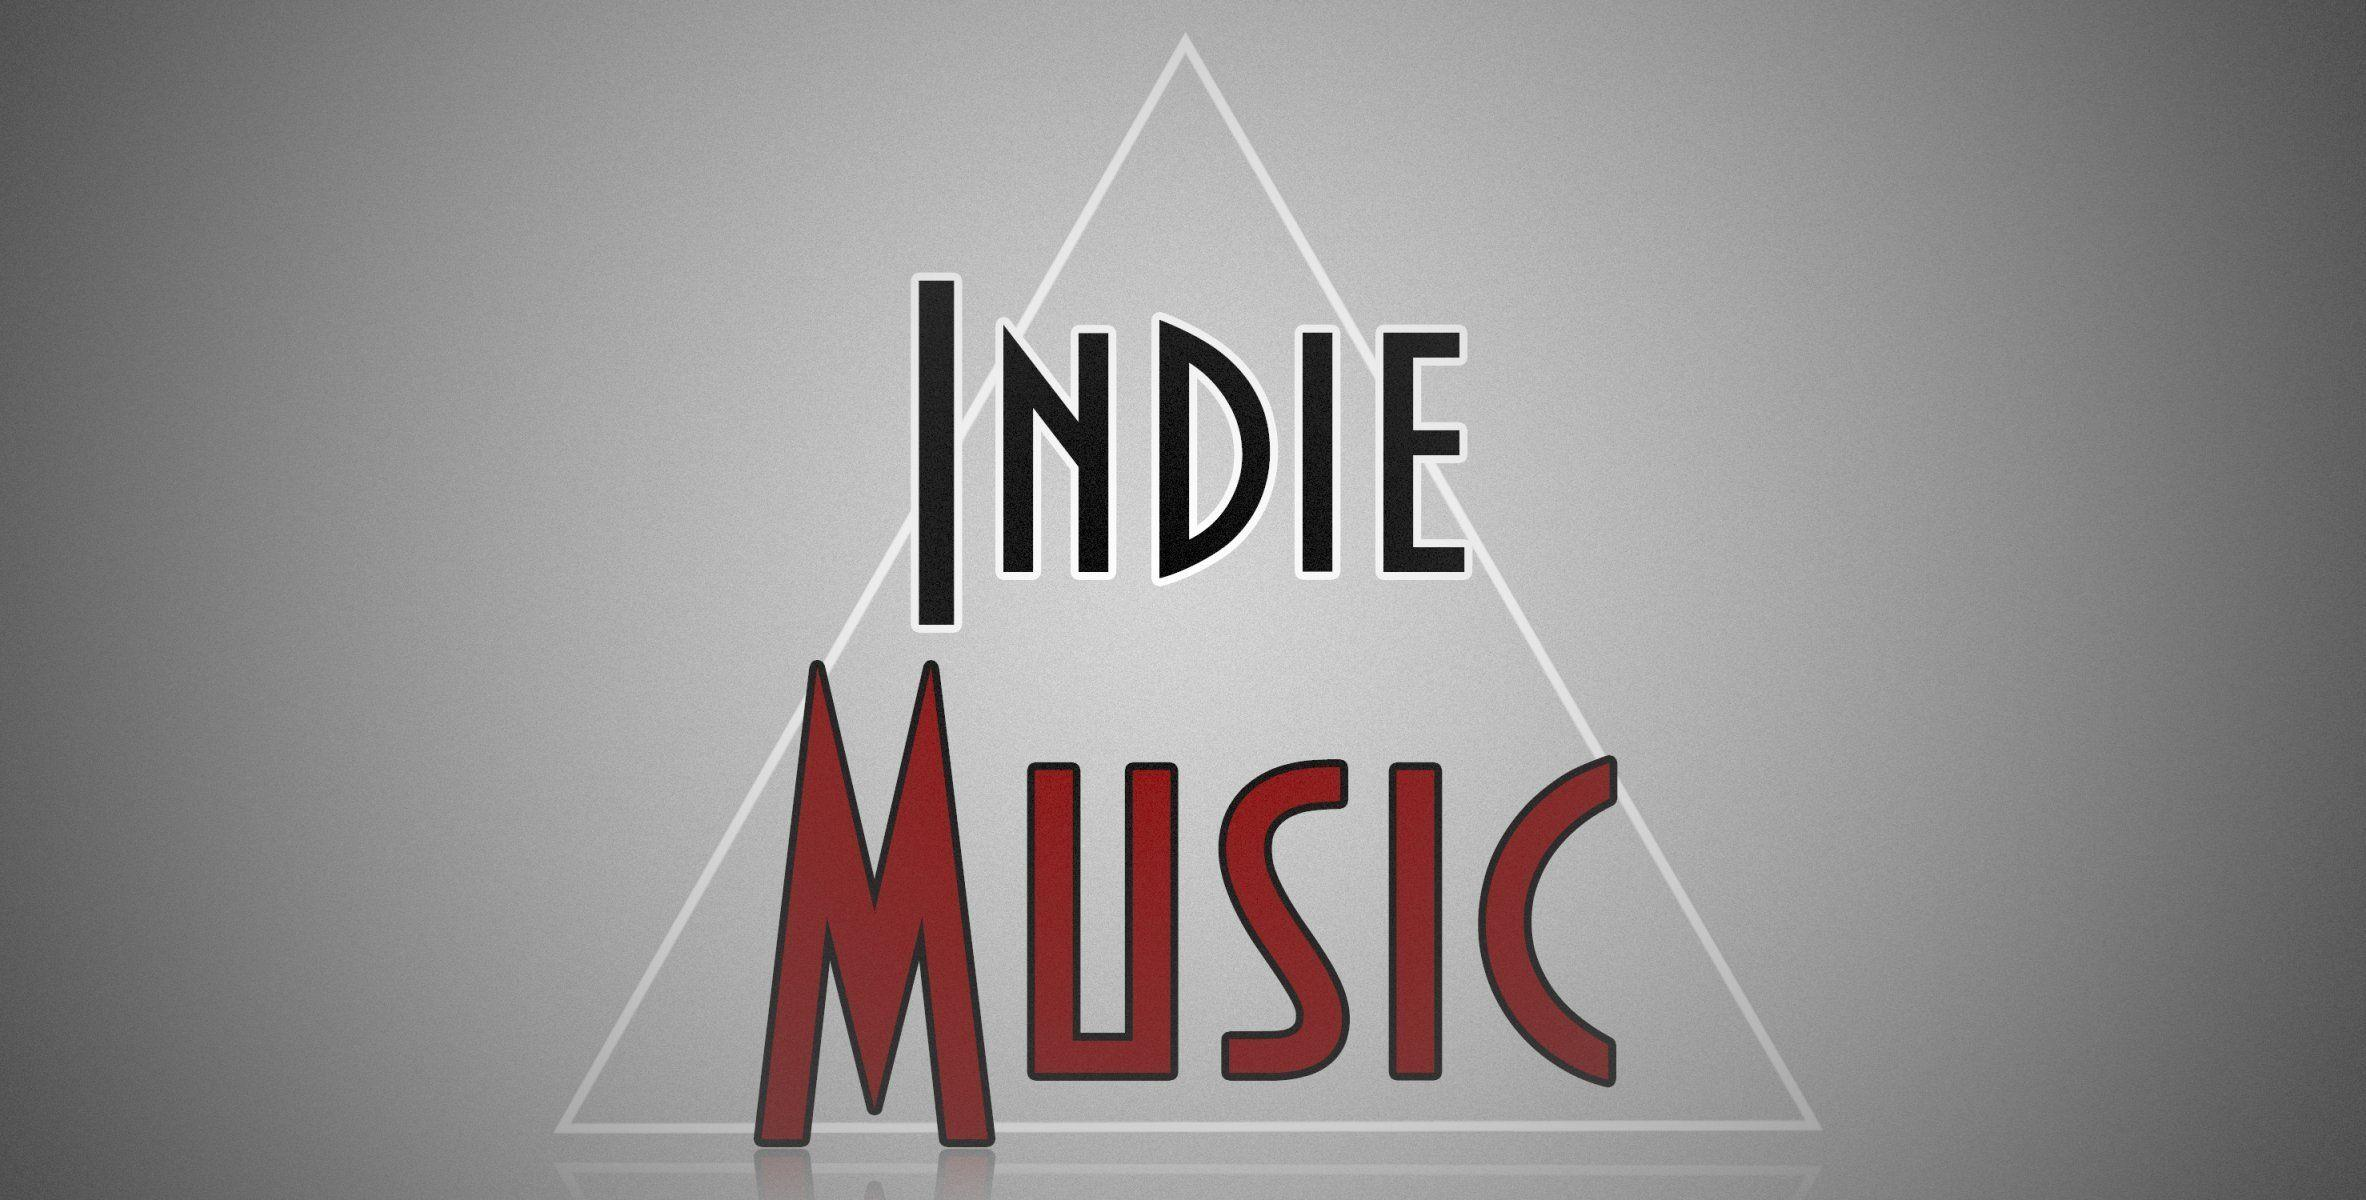 indie music music indie style triangle minimalism HD wallpapers